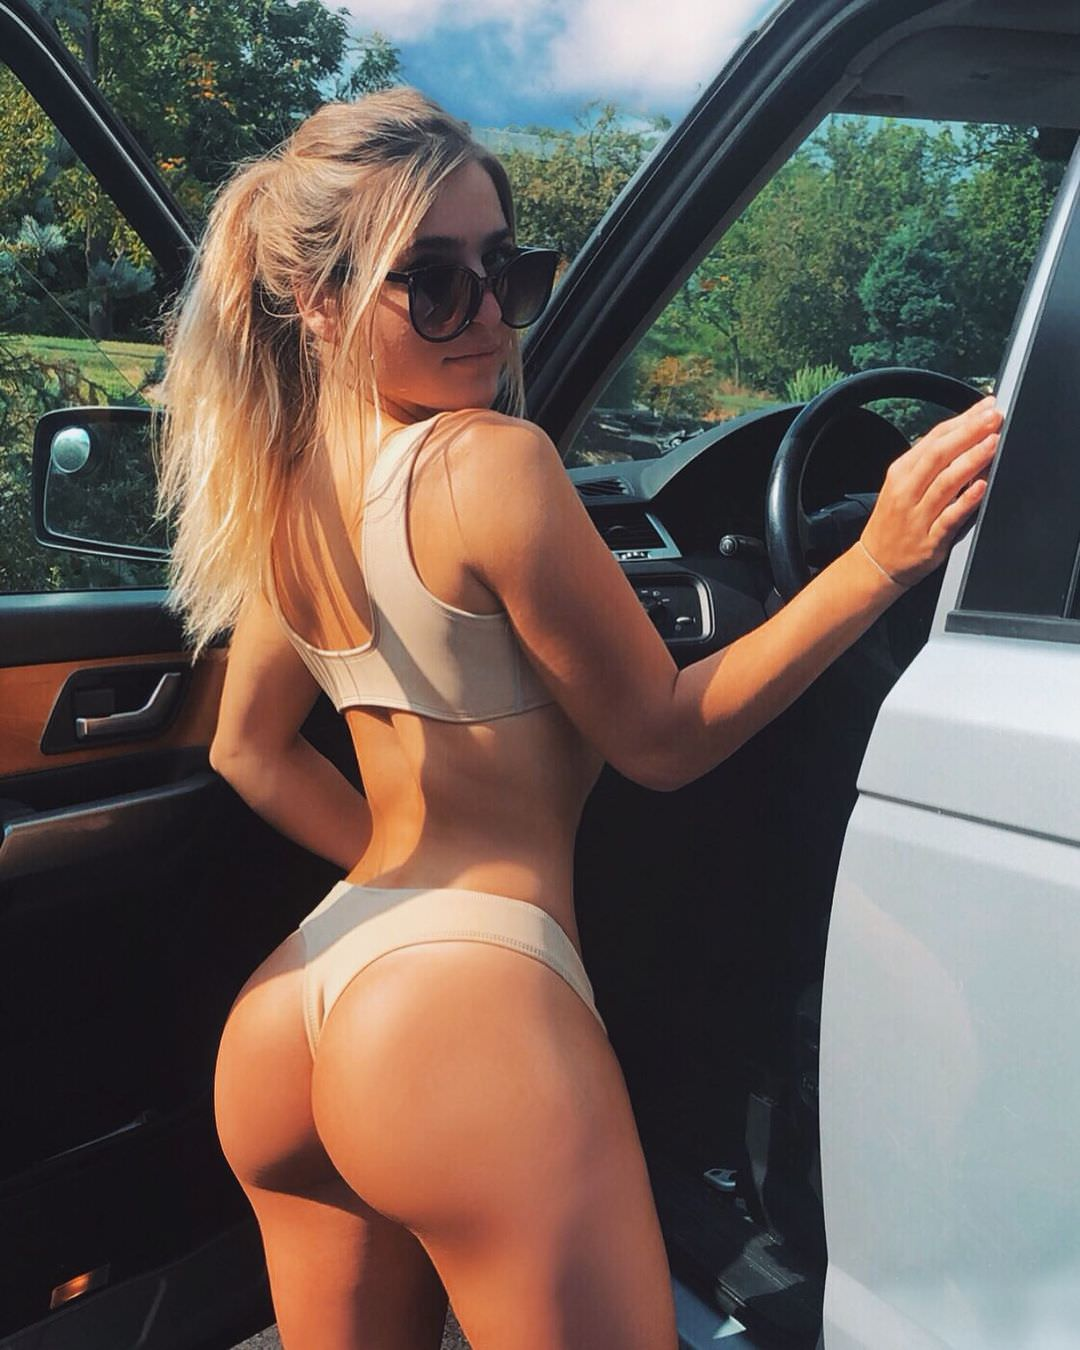 FULL VIDEO: Bissa_mccarty Nude Onlyfans Kissa Mccarty Leaked!